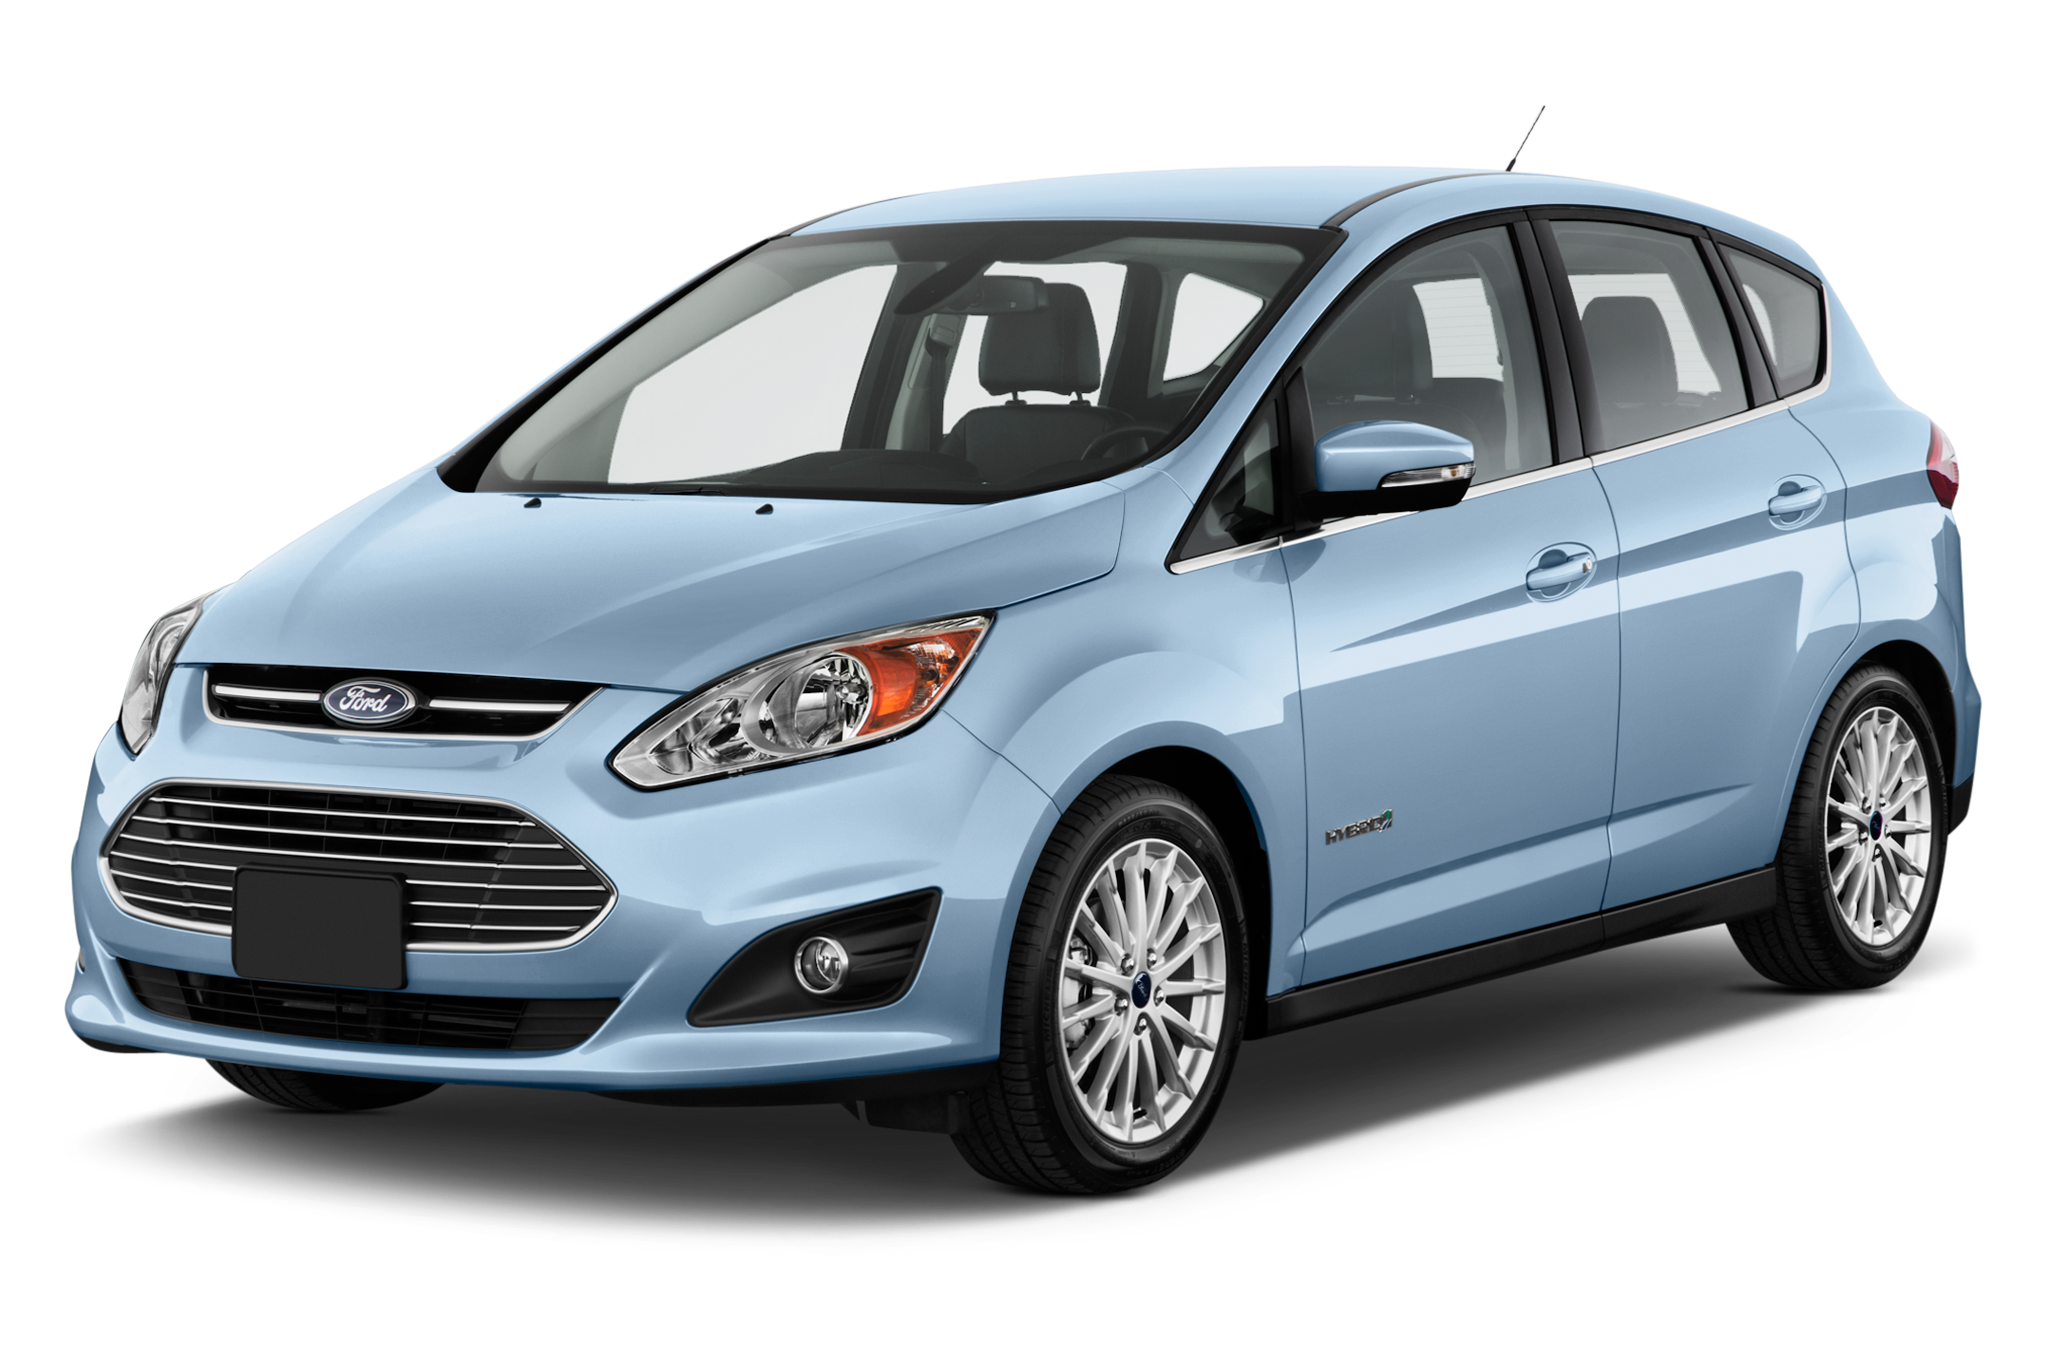 2016 ford c max hybrid sel specs and features msn autos. Black Bedroom Furniture Sets. Home Design Ideas